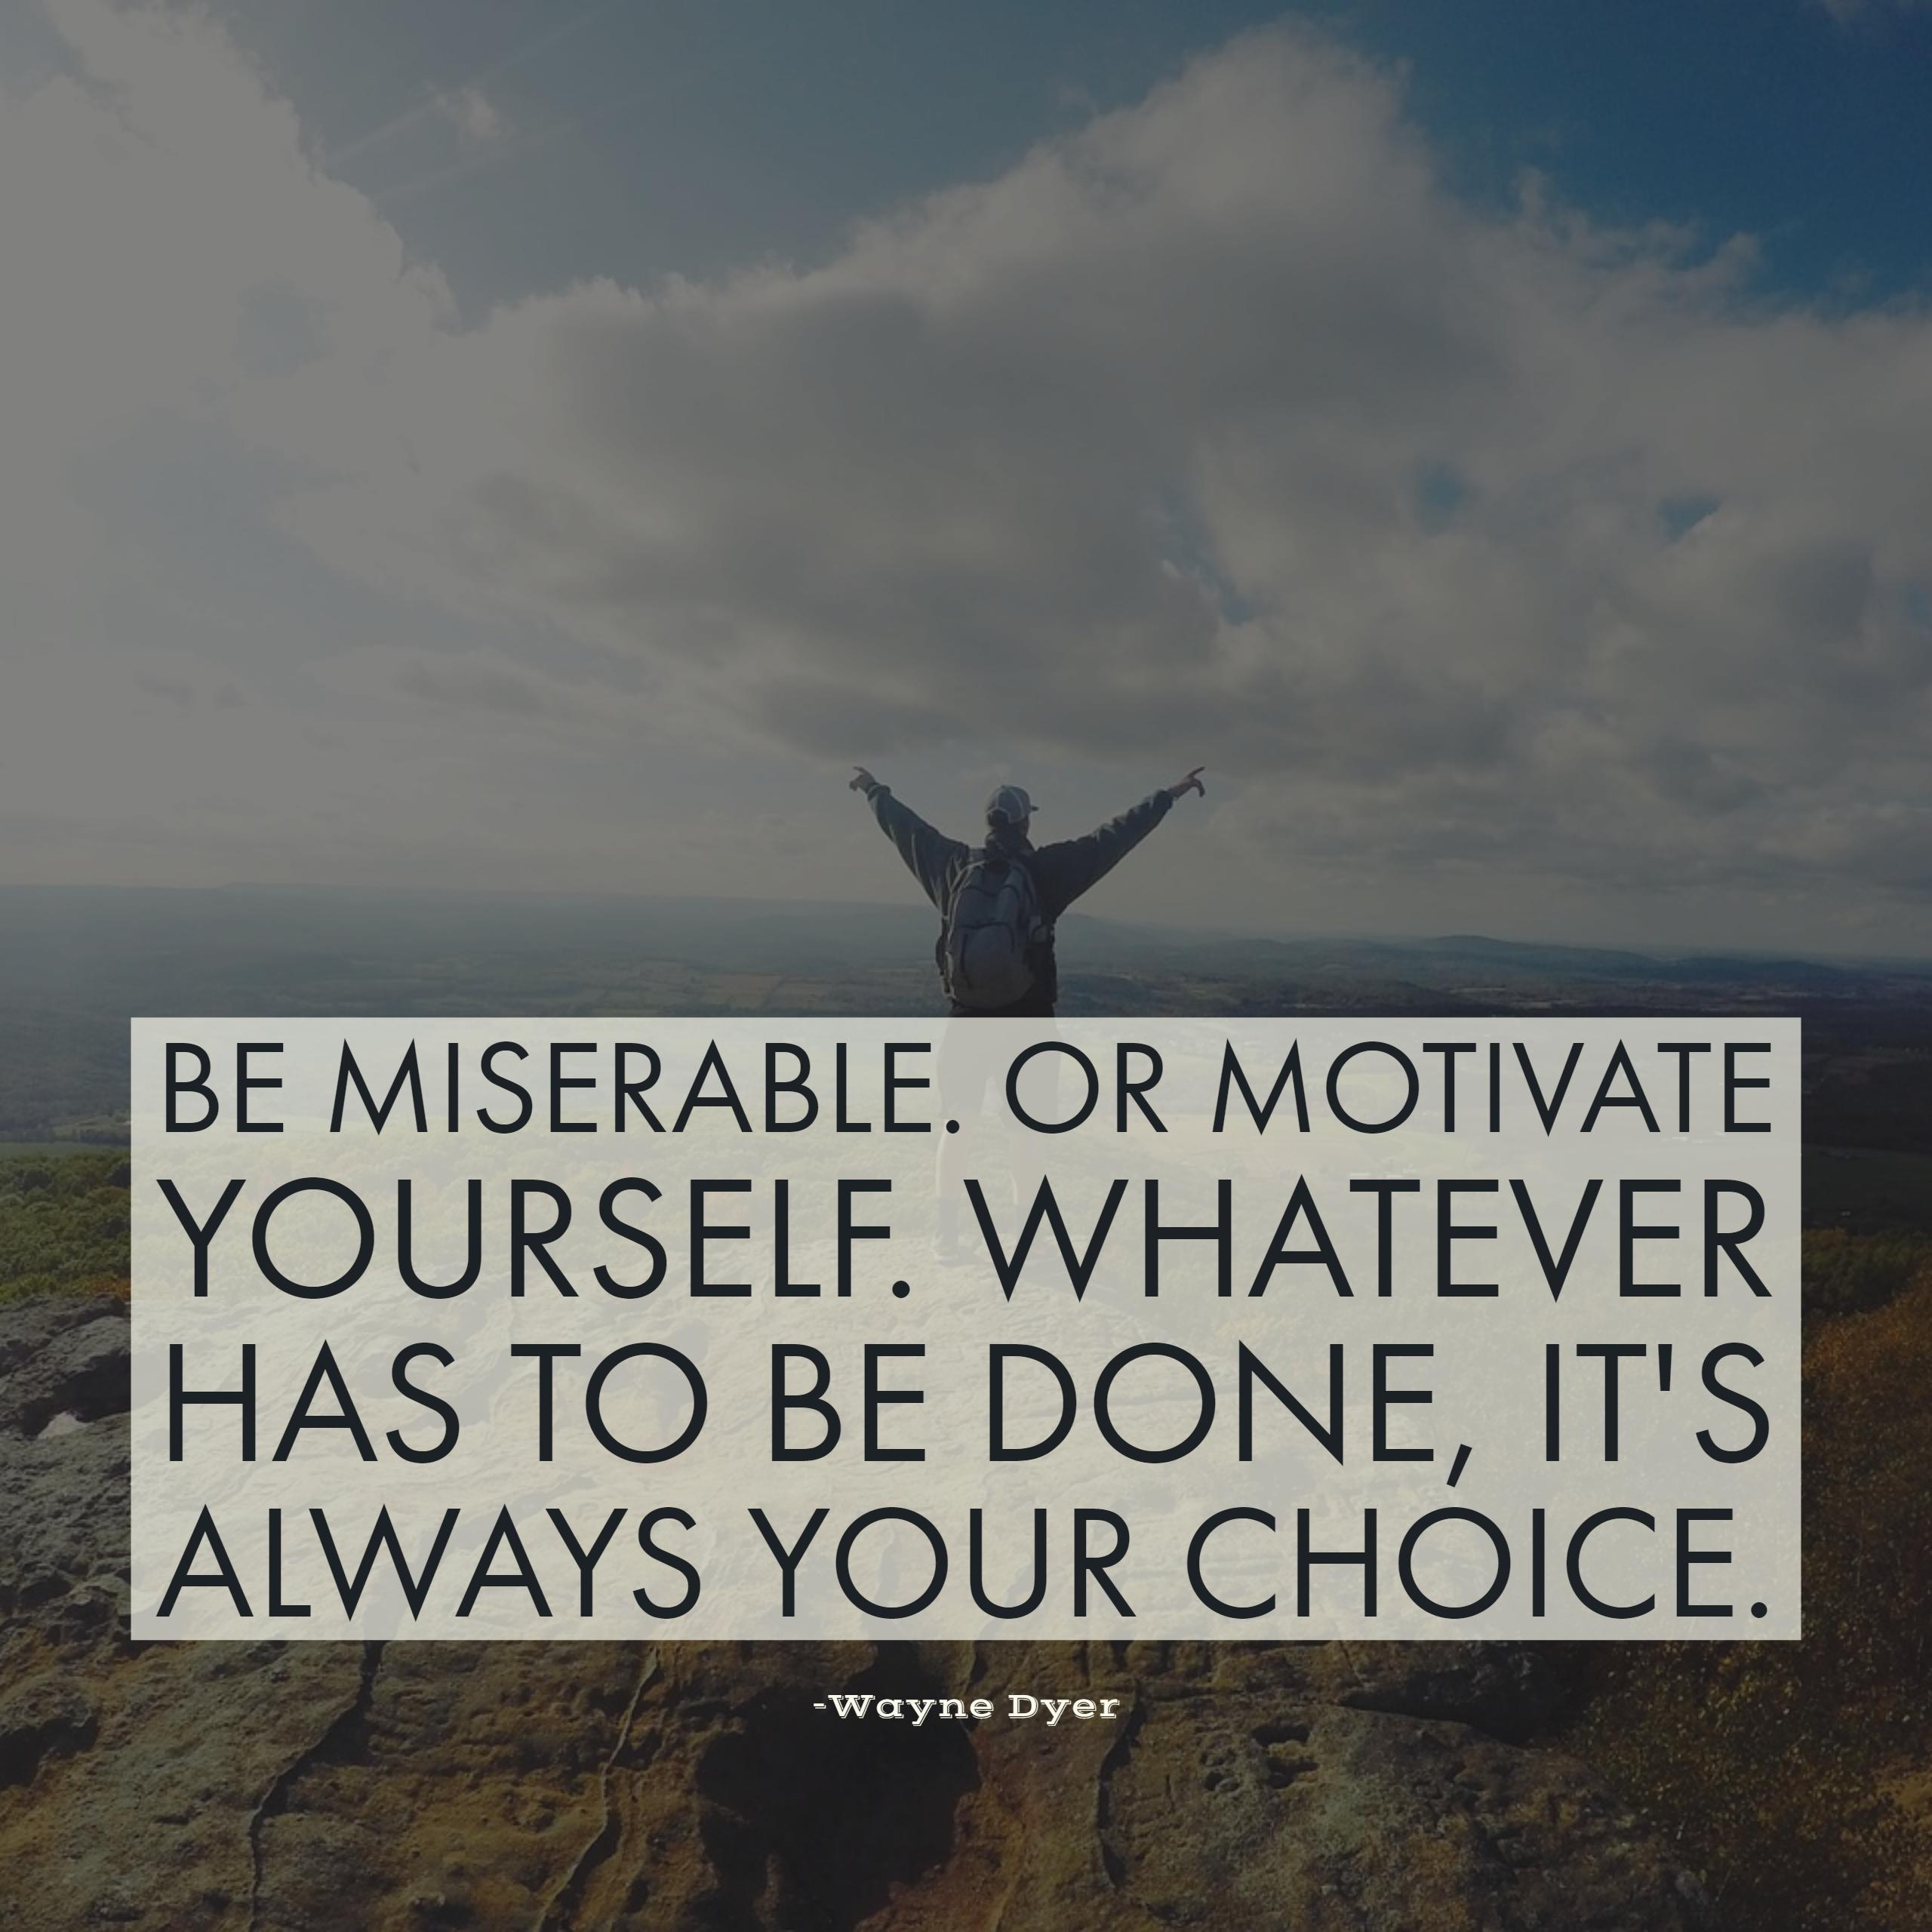 Be miserable. Or motivate yourself. Whatever has to be done, it's always your choice. -Wayne Dyer